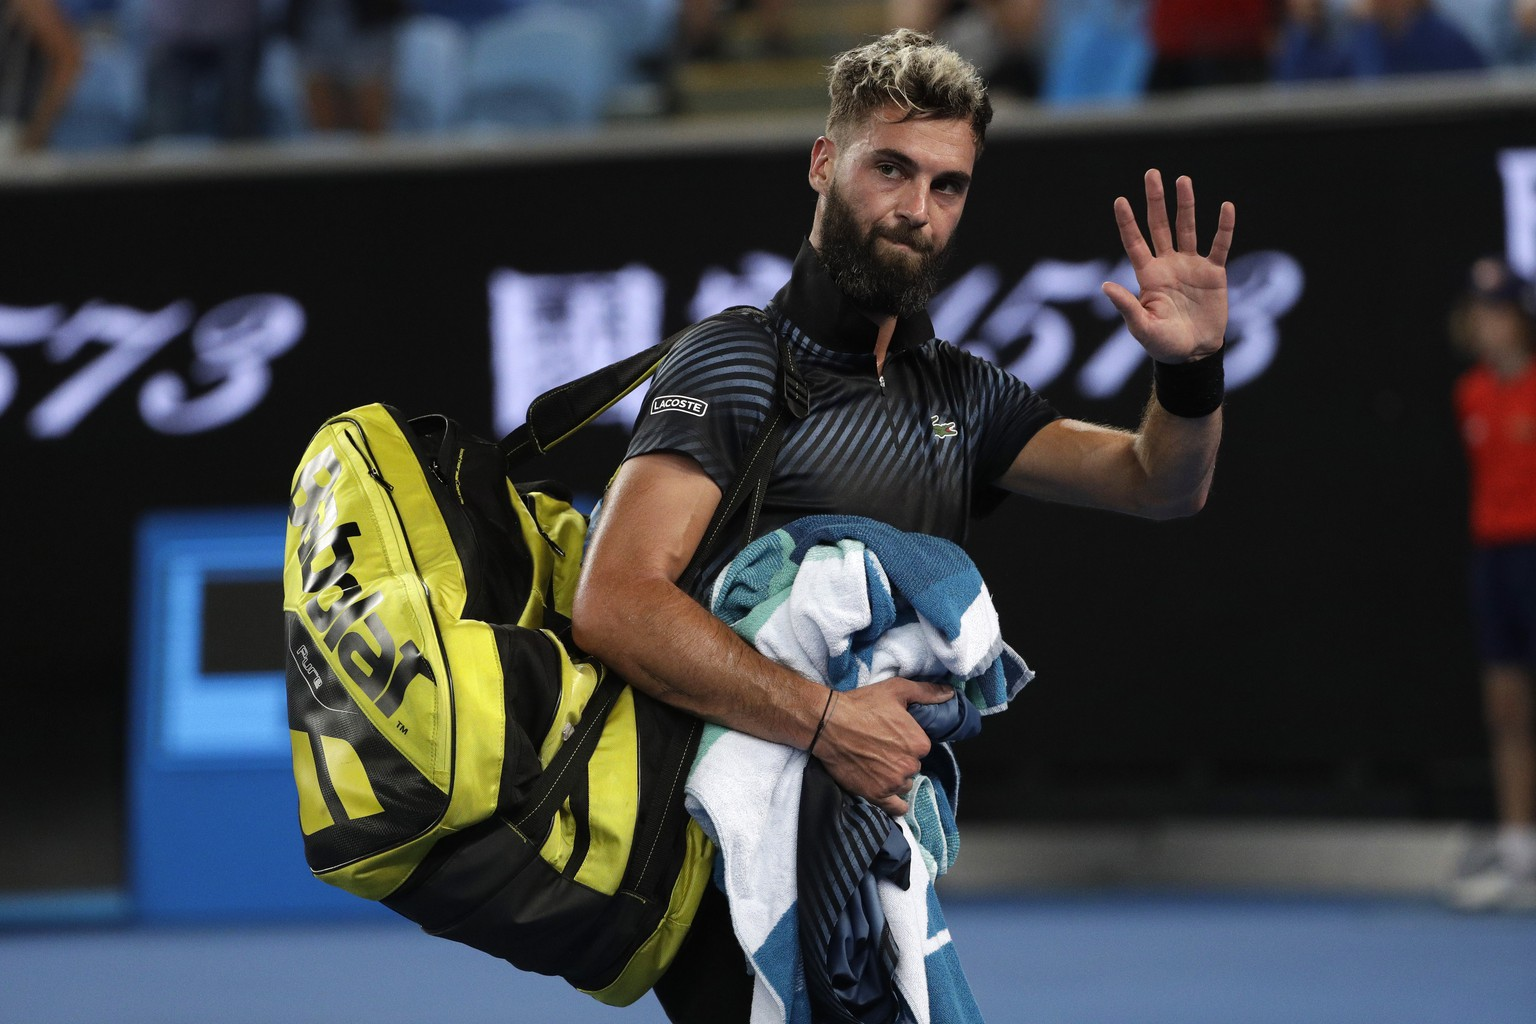 France's Benoit Paire leaves the court after losing to Austria's Dominic Thiem in their first round match at the Australian Open tennis championships in Melbourne, Australia, early Wednesday, Jan. 16, 2019. (AP Photo/Mark Schiefelbein)